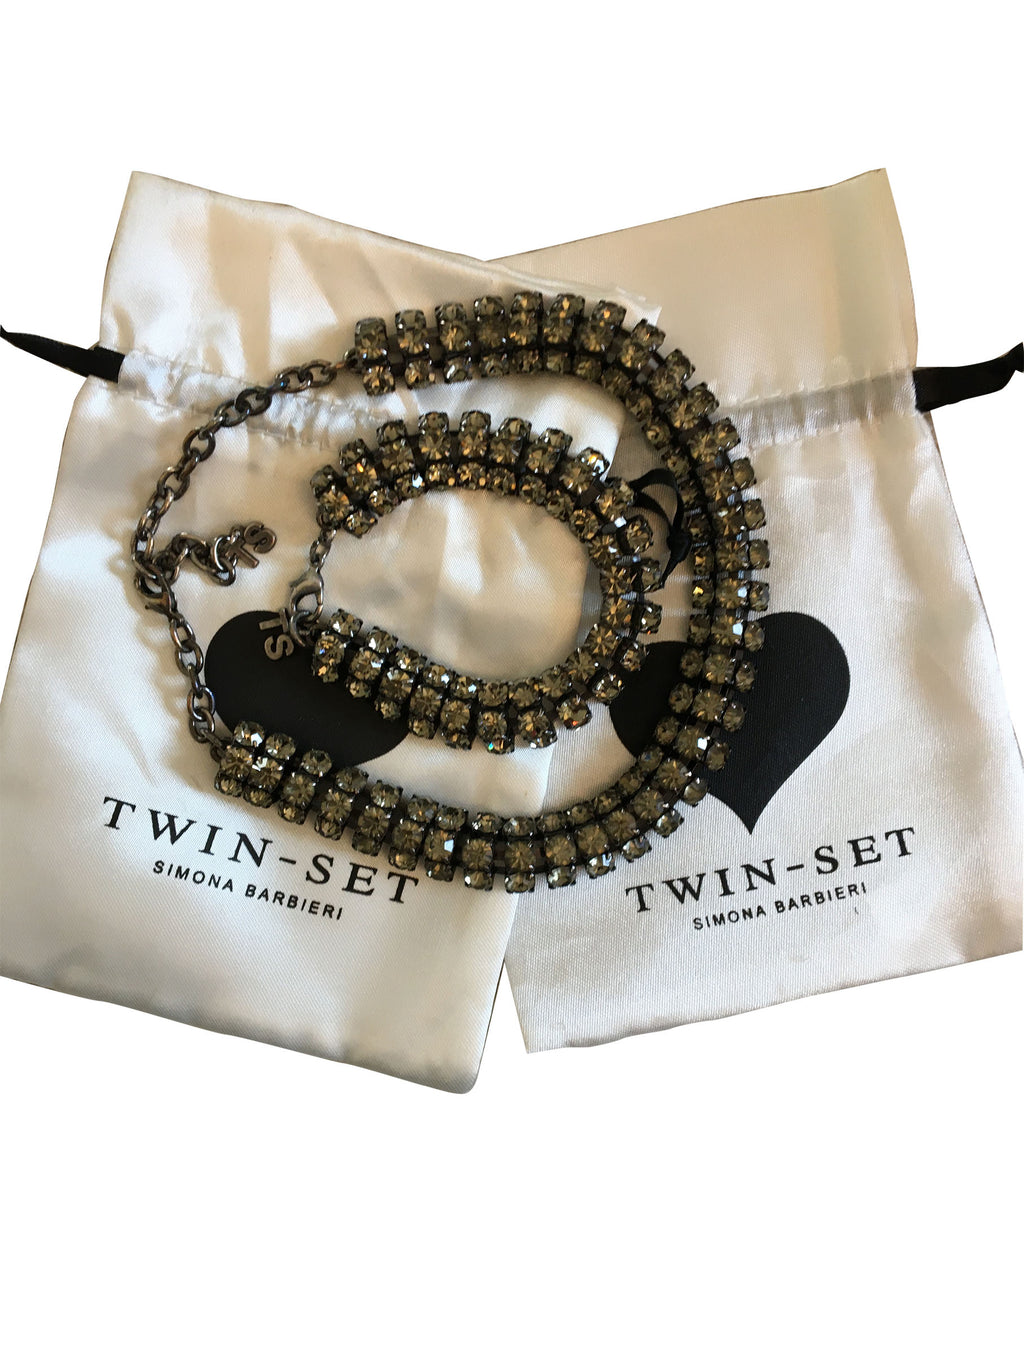 Twin-Set Necklace and Bracelet Rhinestone Set with Adjustable Size